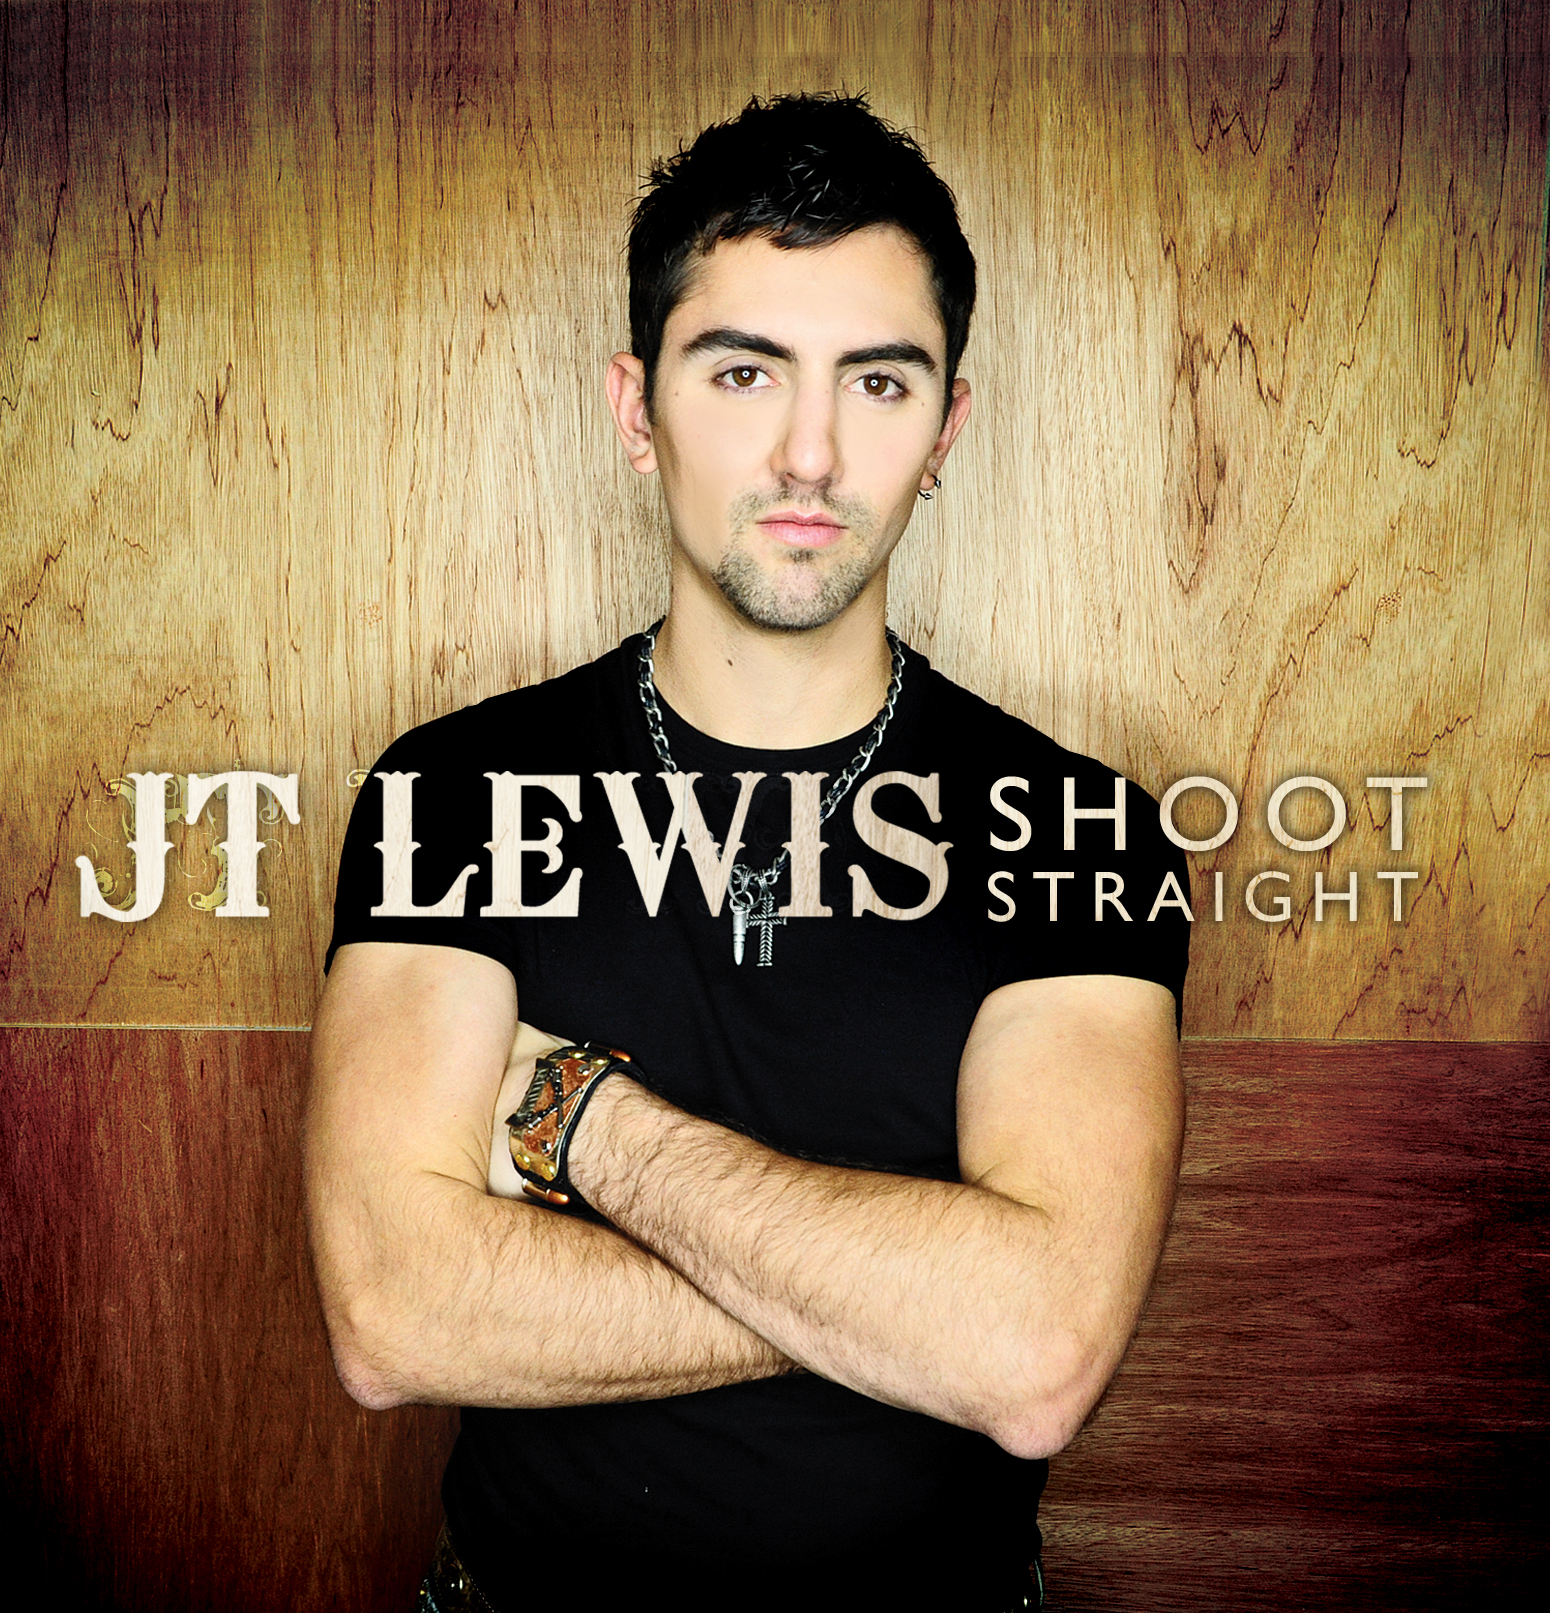 JT Lewis Shoot Straight EP